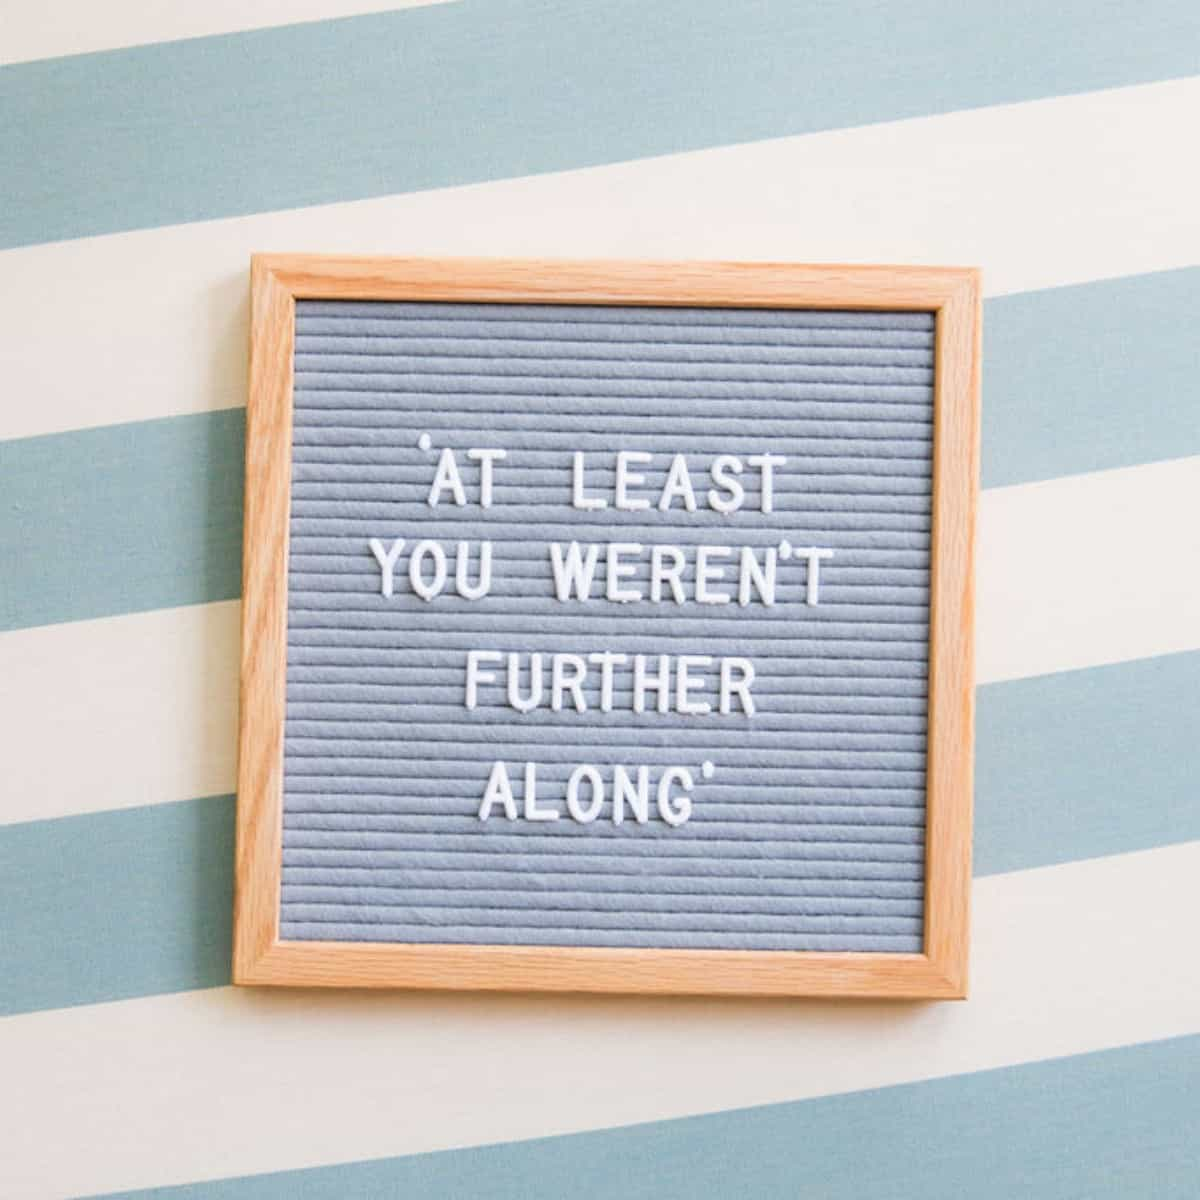 letterboard-on-blue-and-white-background-that-says-at-least-you-werent-further-along